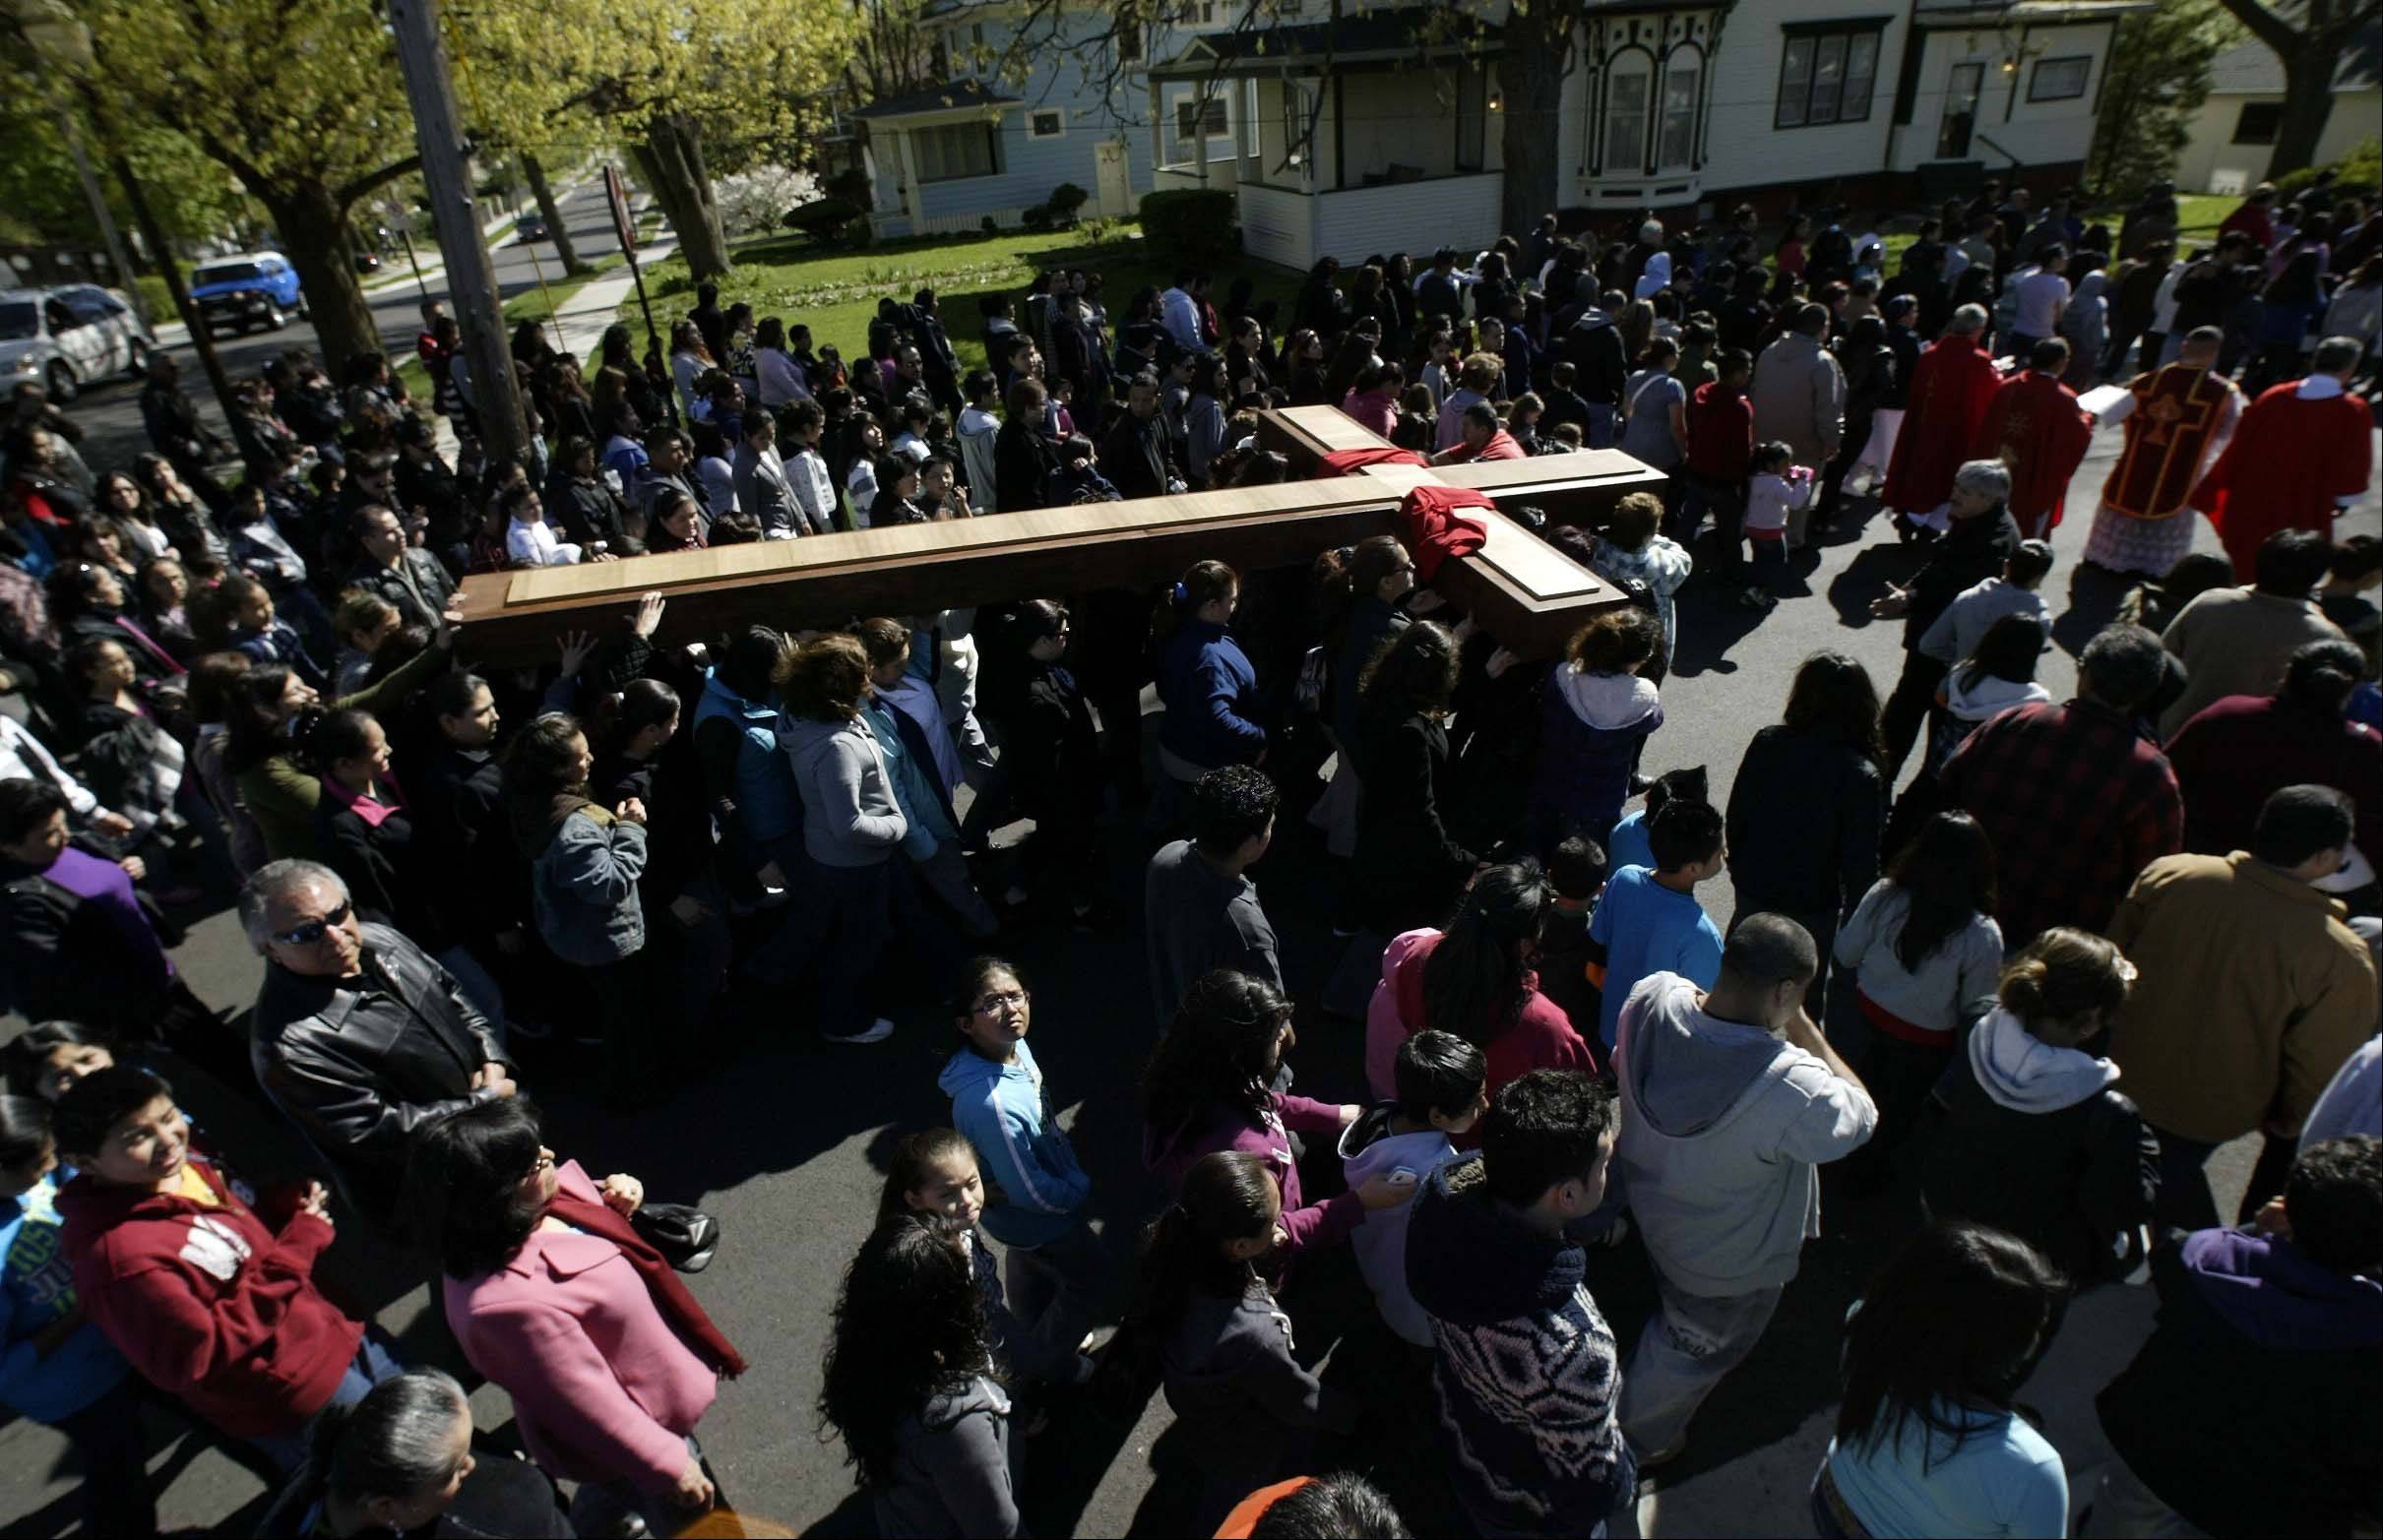 The cross travels back to St. Joseph Church during the Annual passion march in Elgin.